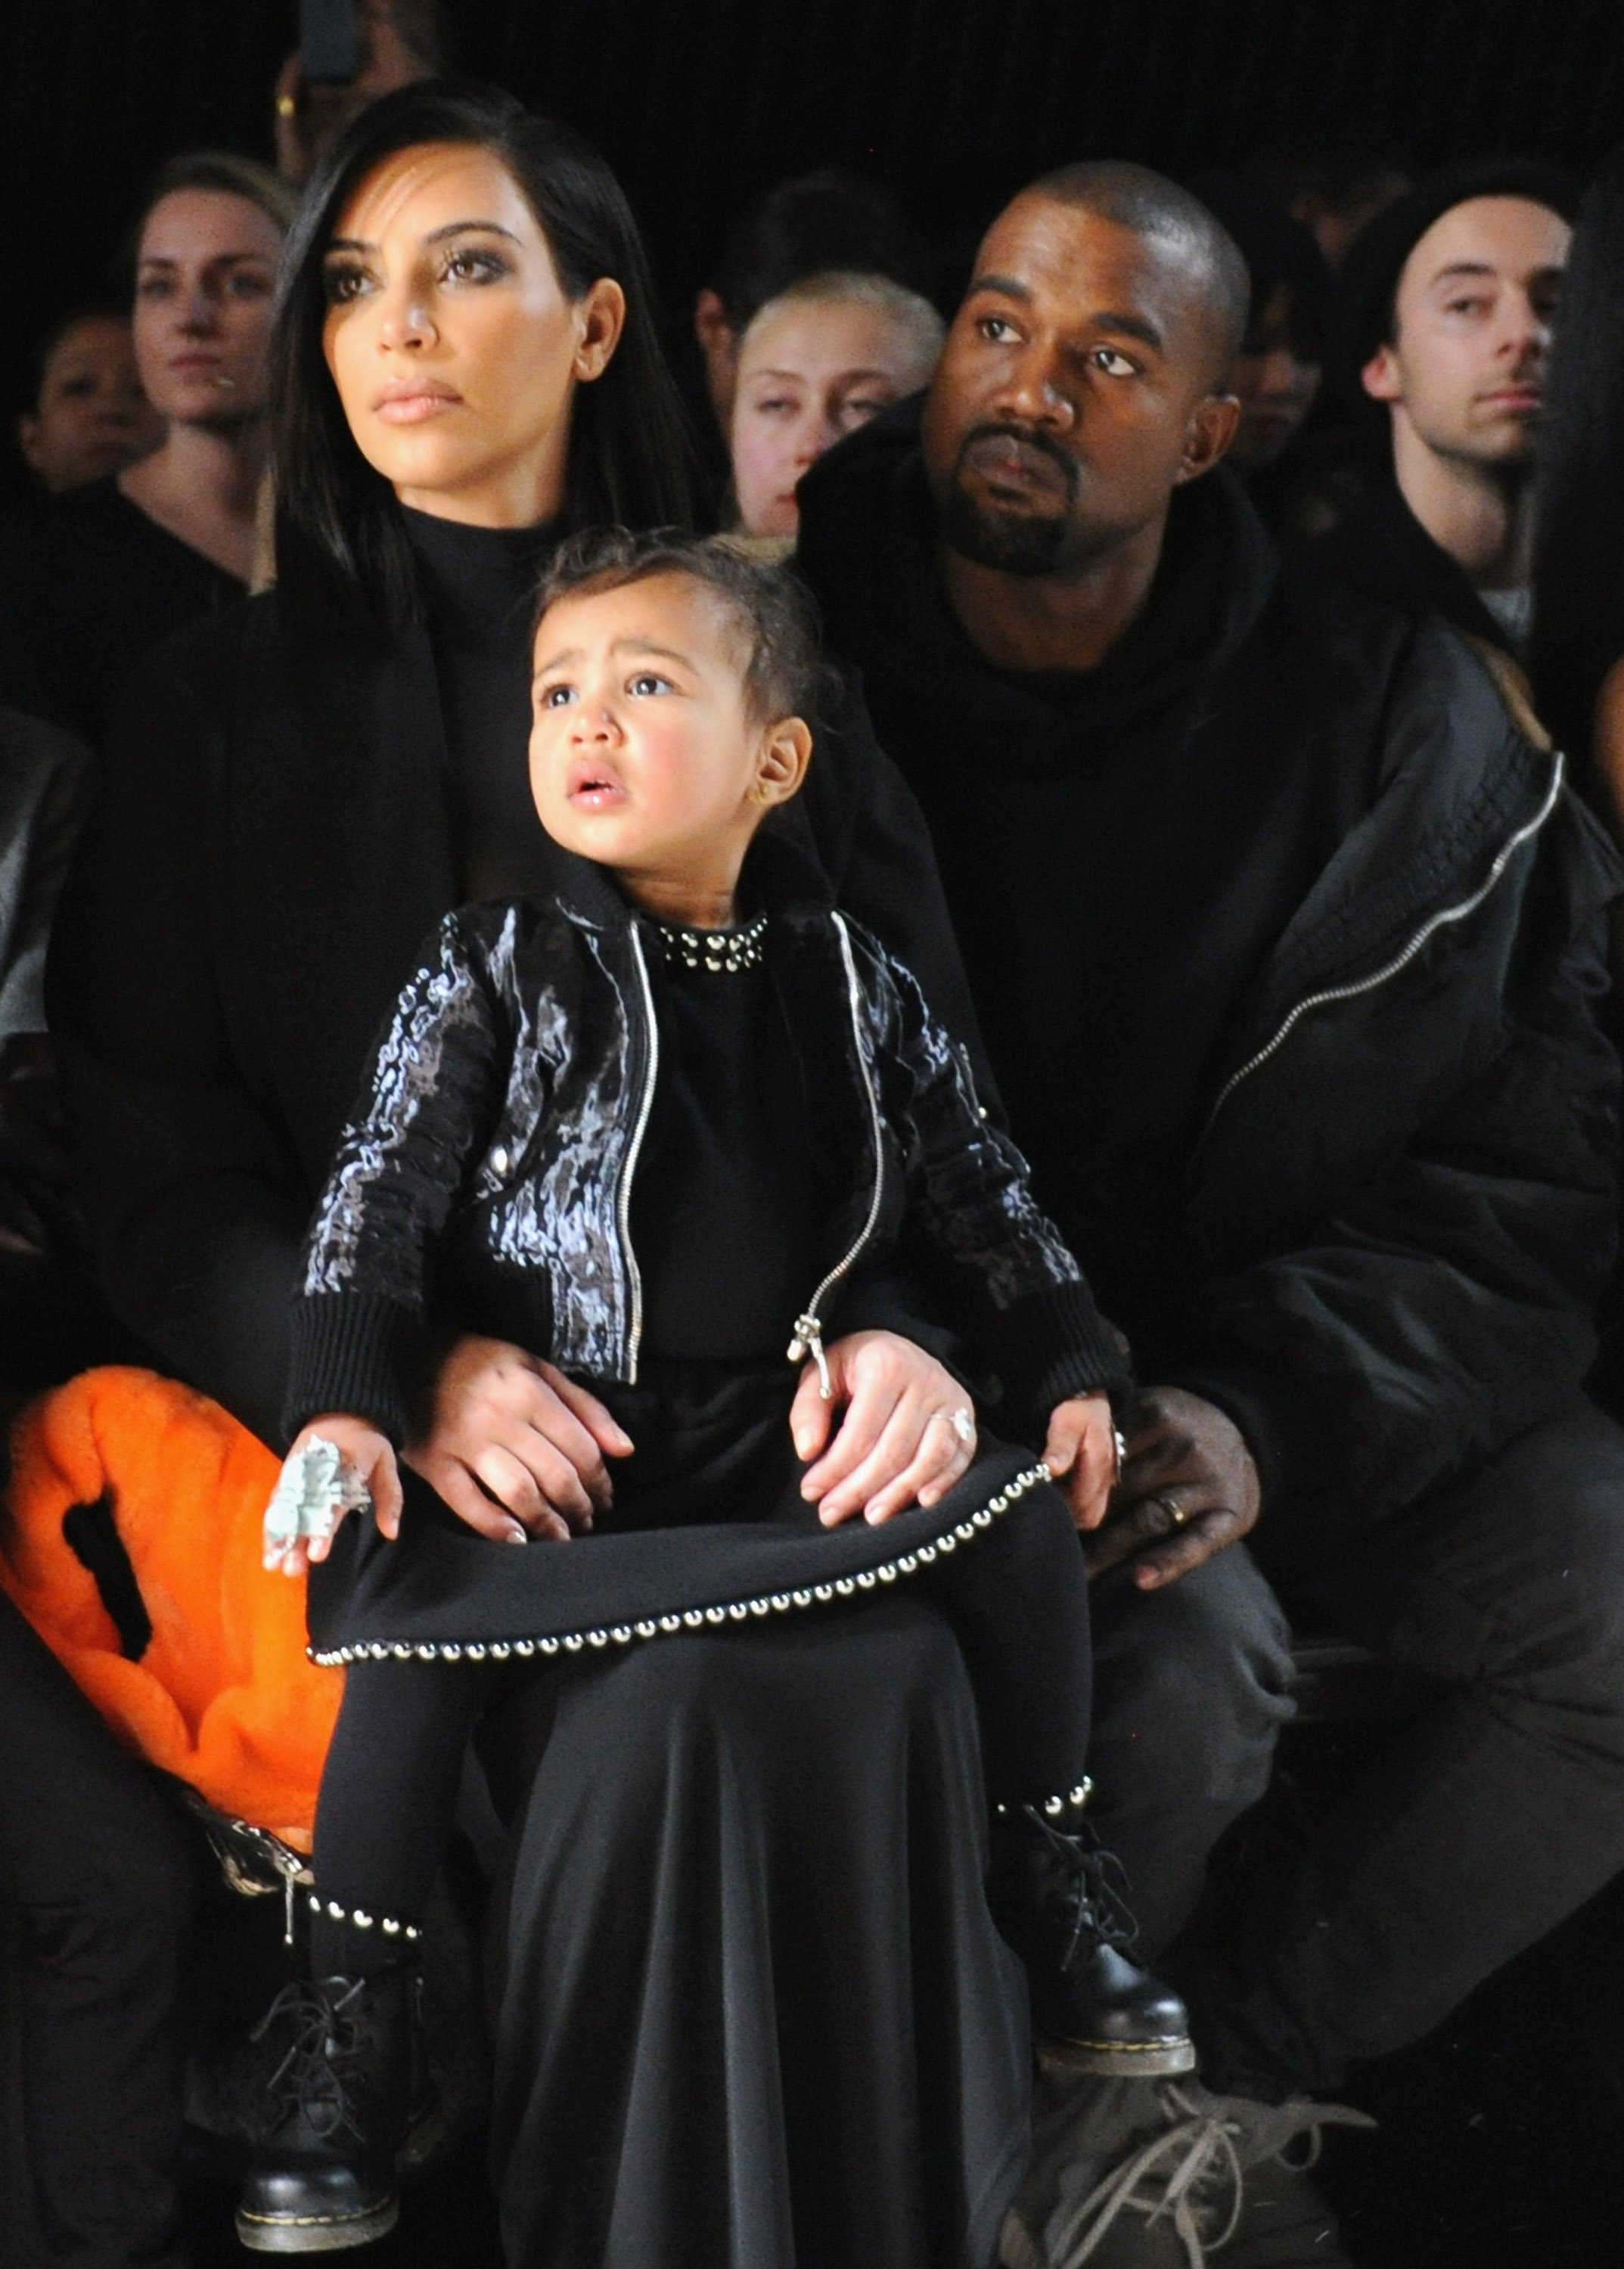 Kim Kardashian, North West and Kanye West attend the Alexander Wang Fashion Show | Source: Getty Images